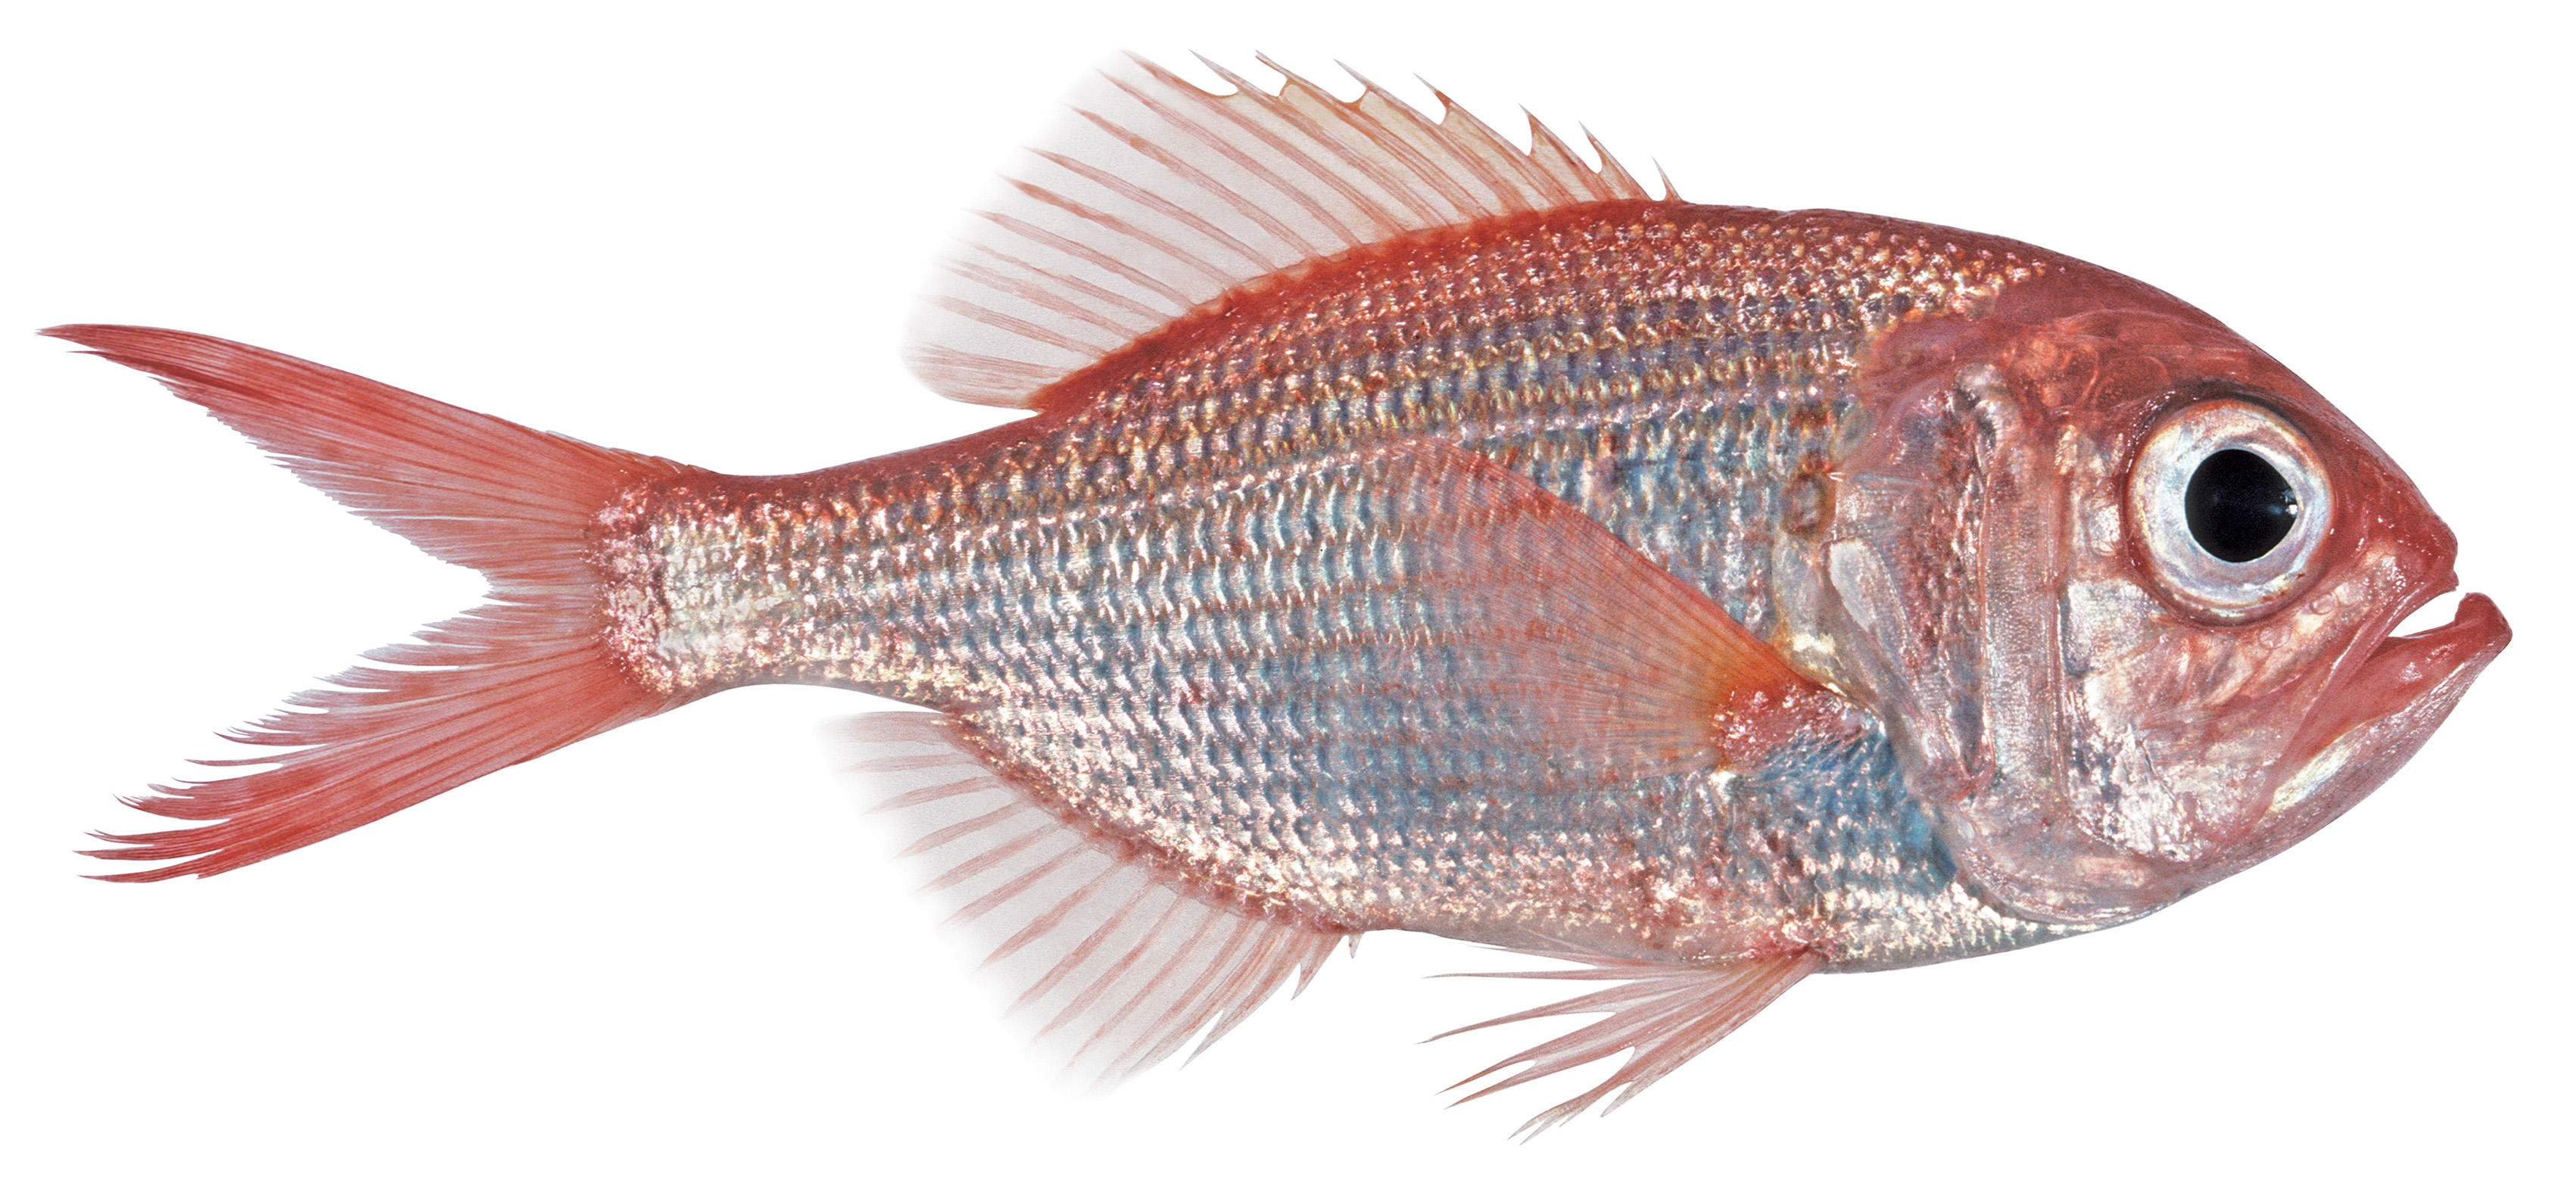 FishMap On The Atlas Of Living Australia Provides The Geographical And  Depth Ranges Of Some 4500 Australian Marine Fishes, Including The Redfish  ...